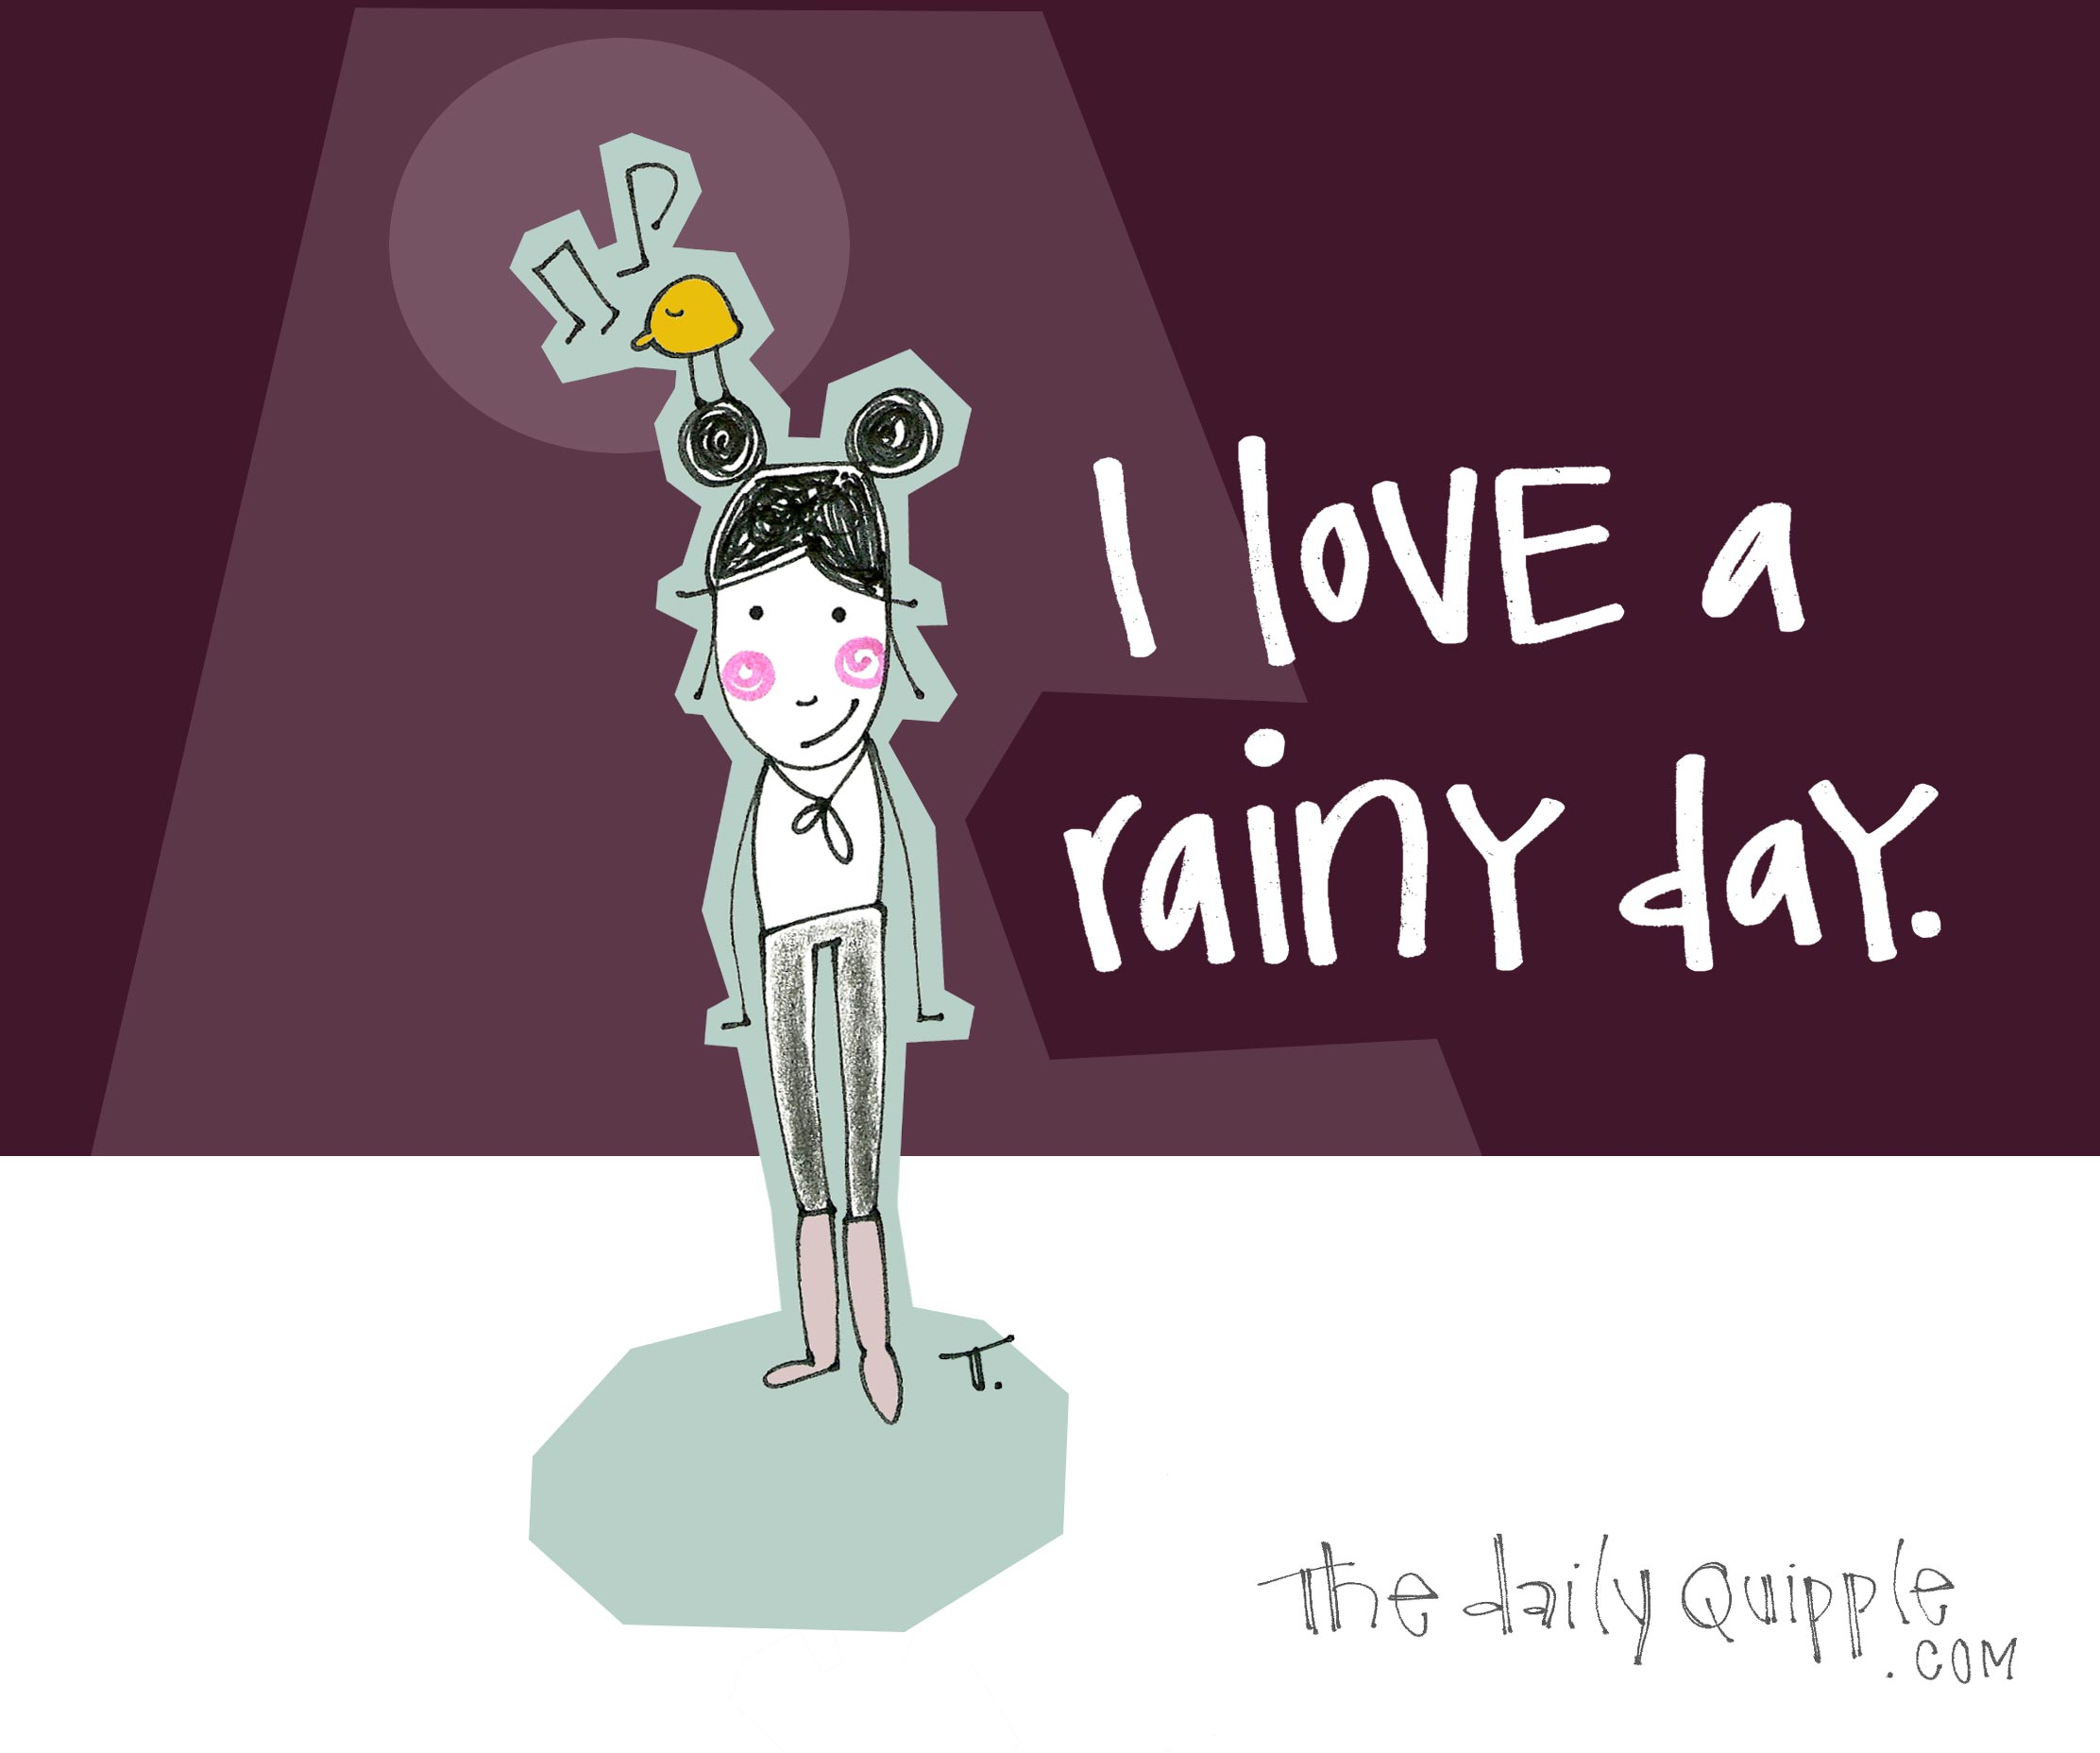 I love a rainy day.